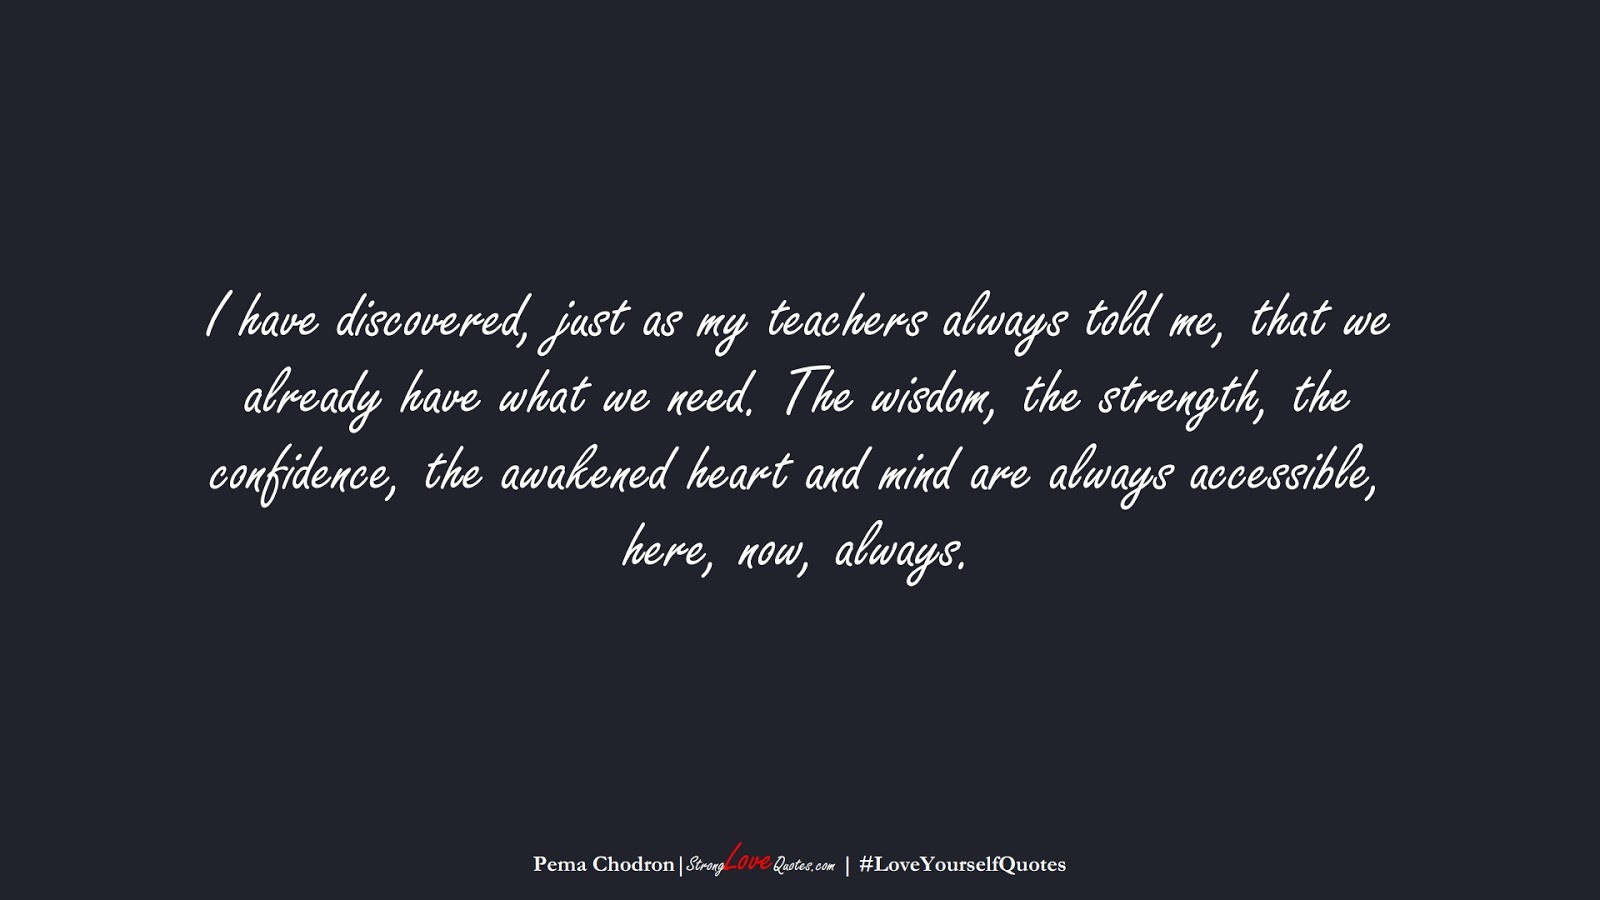 I have discovered, just as my teachers always told me, that we already have what we need. The wisdom, the strength, the confidence, the awakened heart and mind are always accessible, here, now, always. (Pema Chodron);  #LoveYourselfQuotes